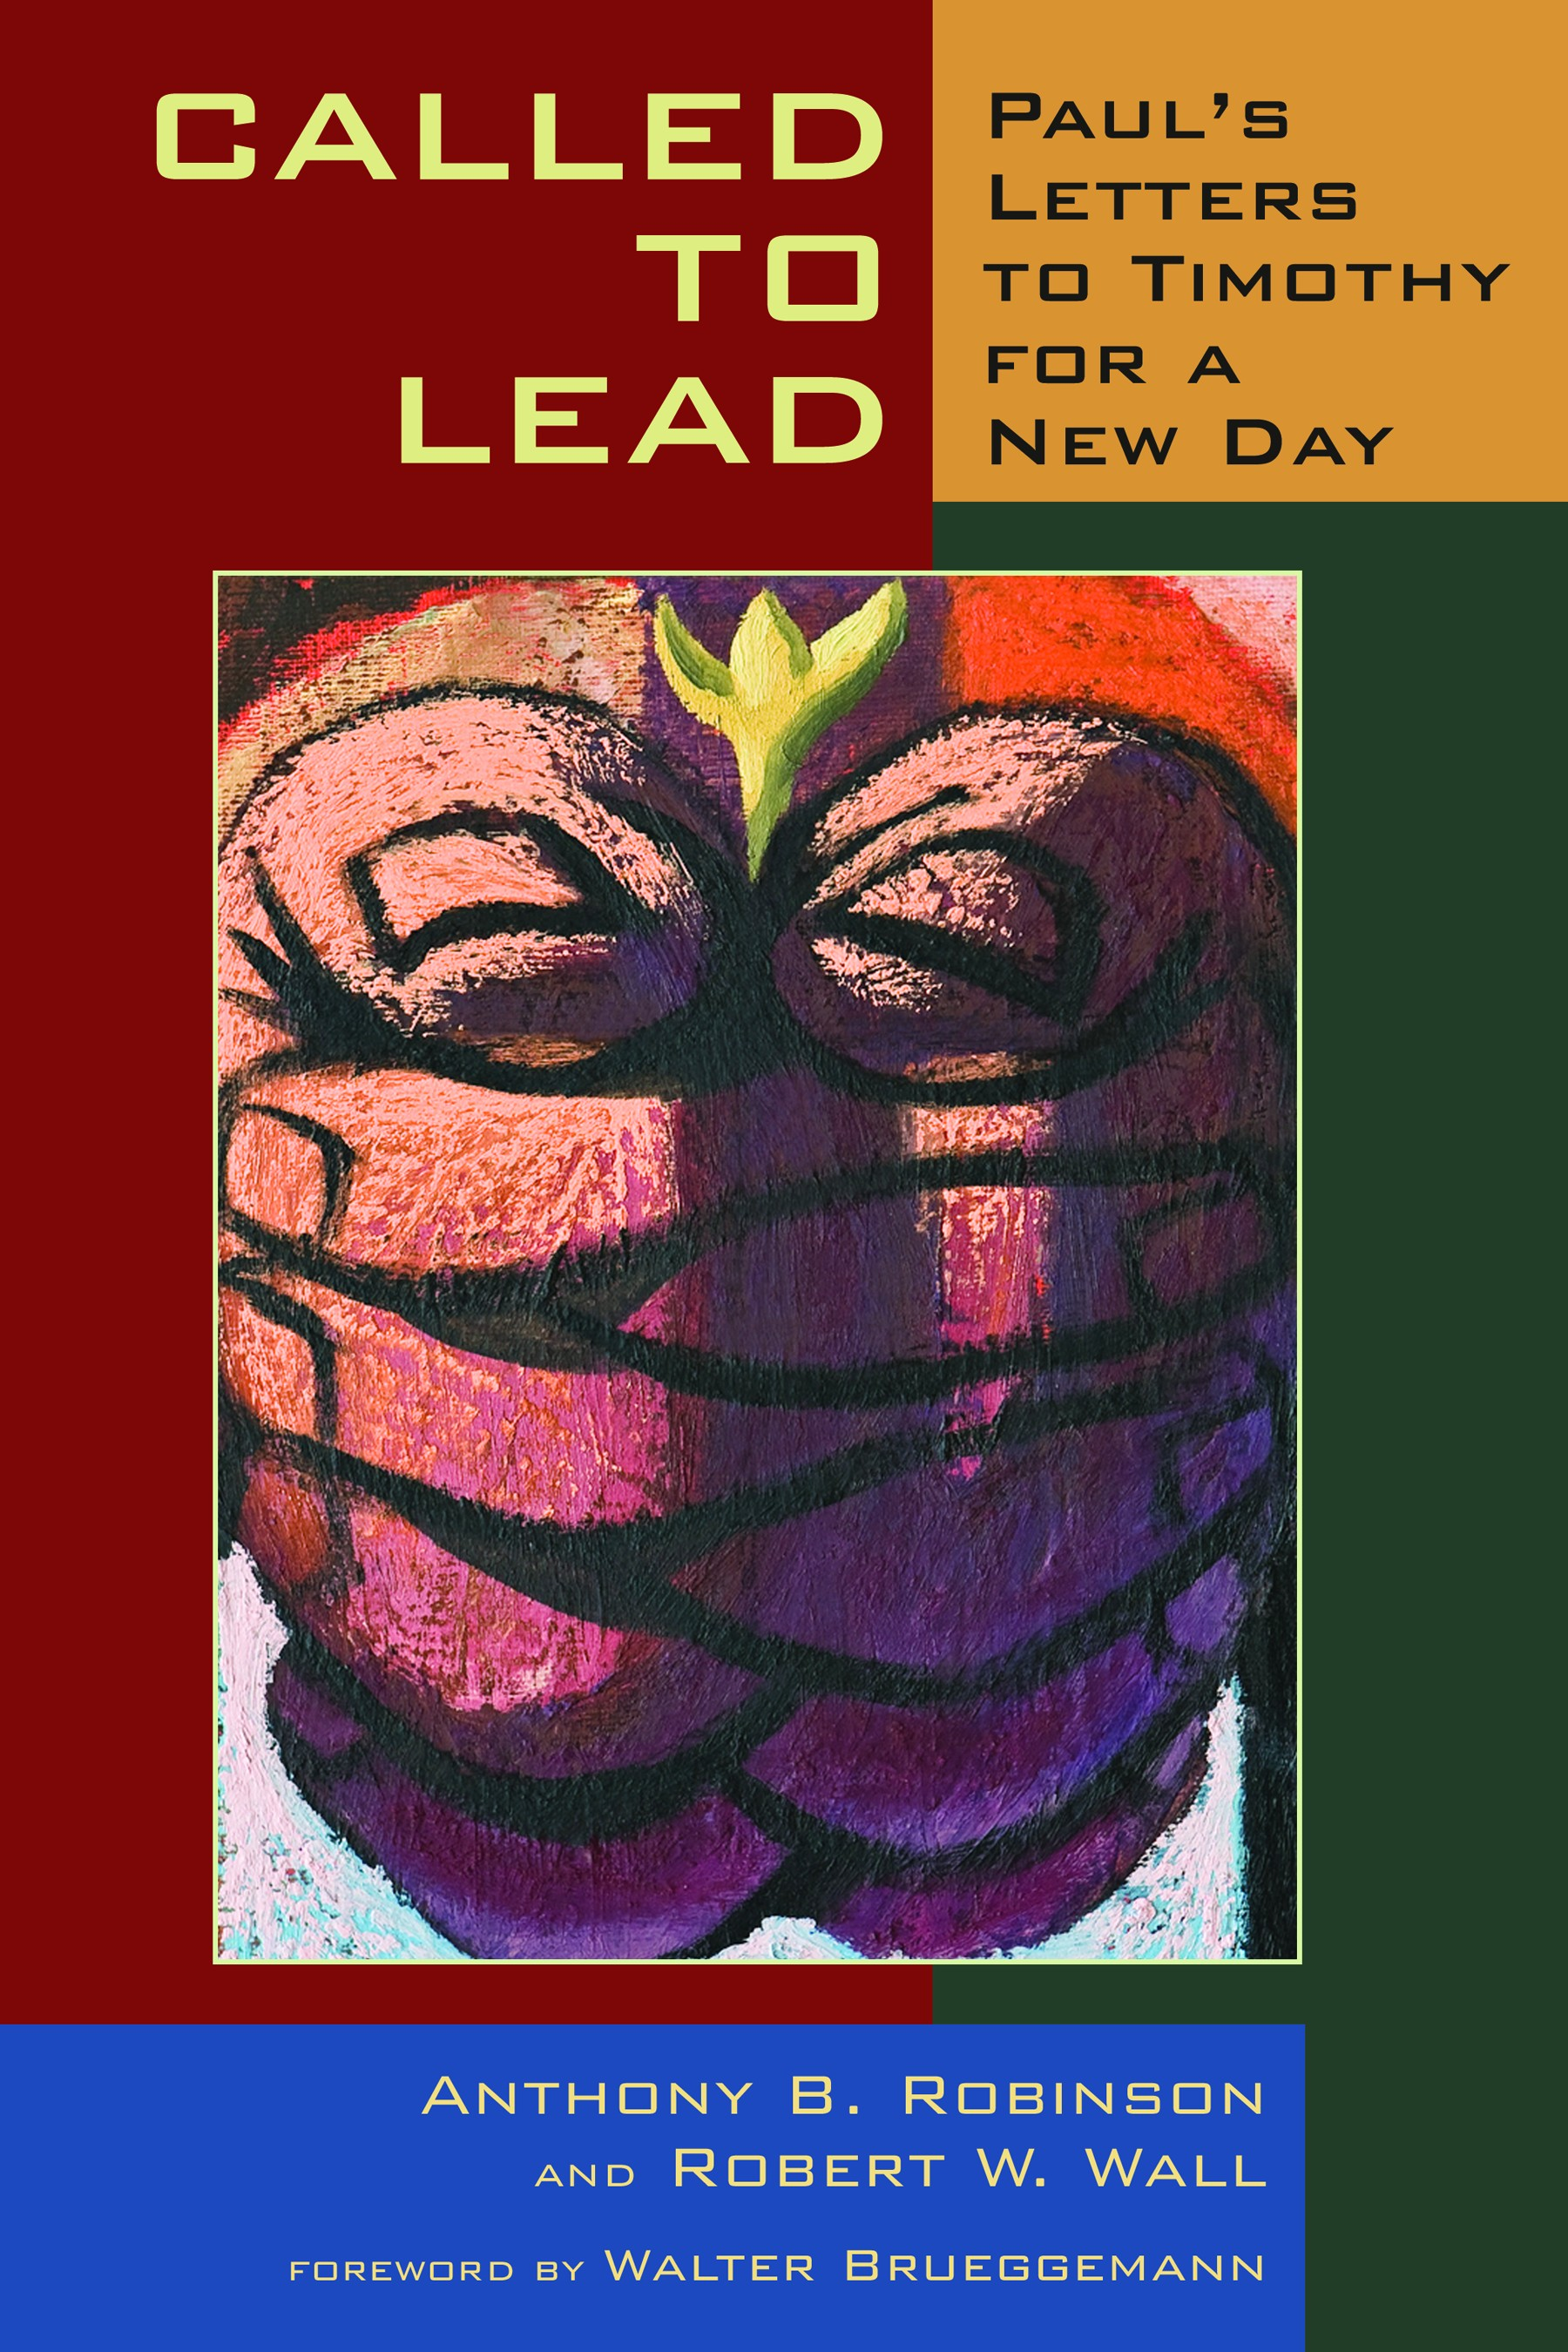 called to lead.jpg